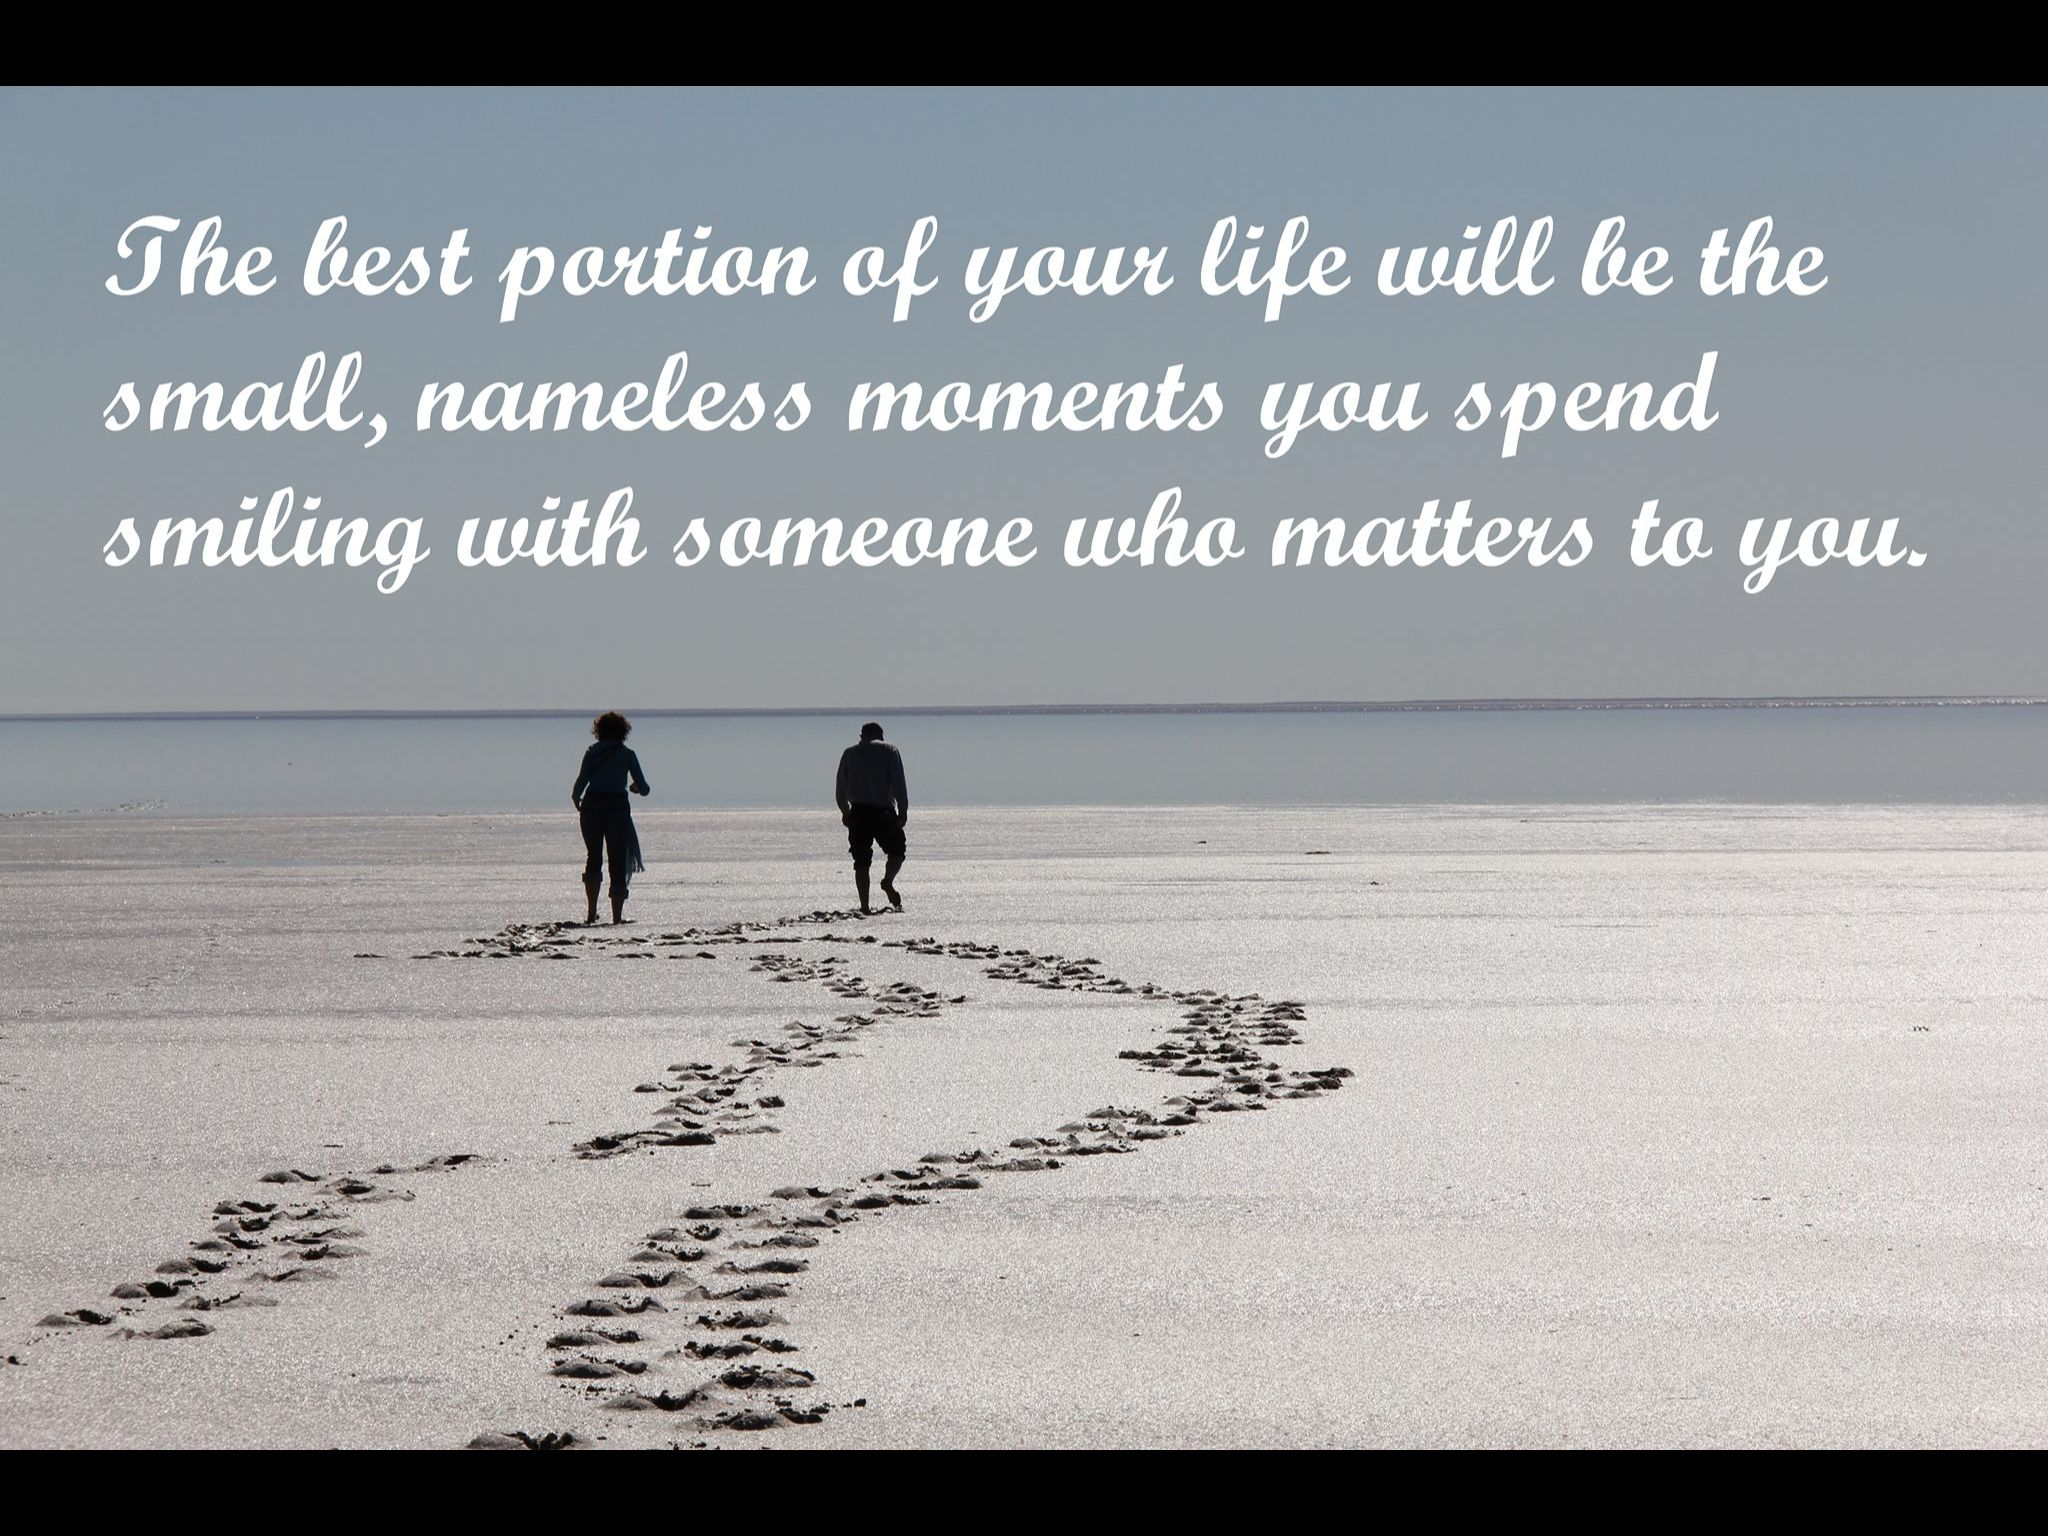 The best portion of your life, will be the small, nameless moments you spend smiling with someone who matters to you.